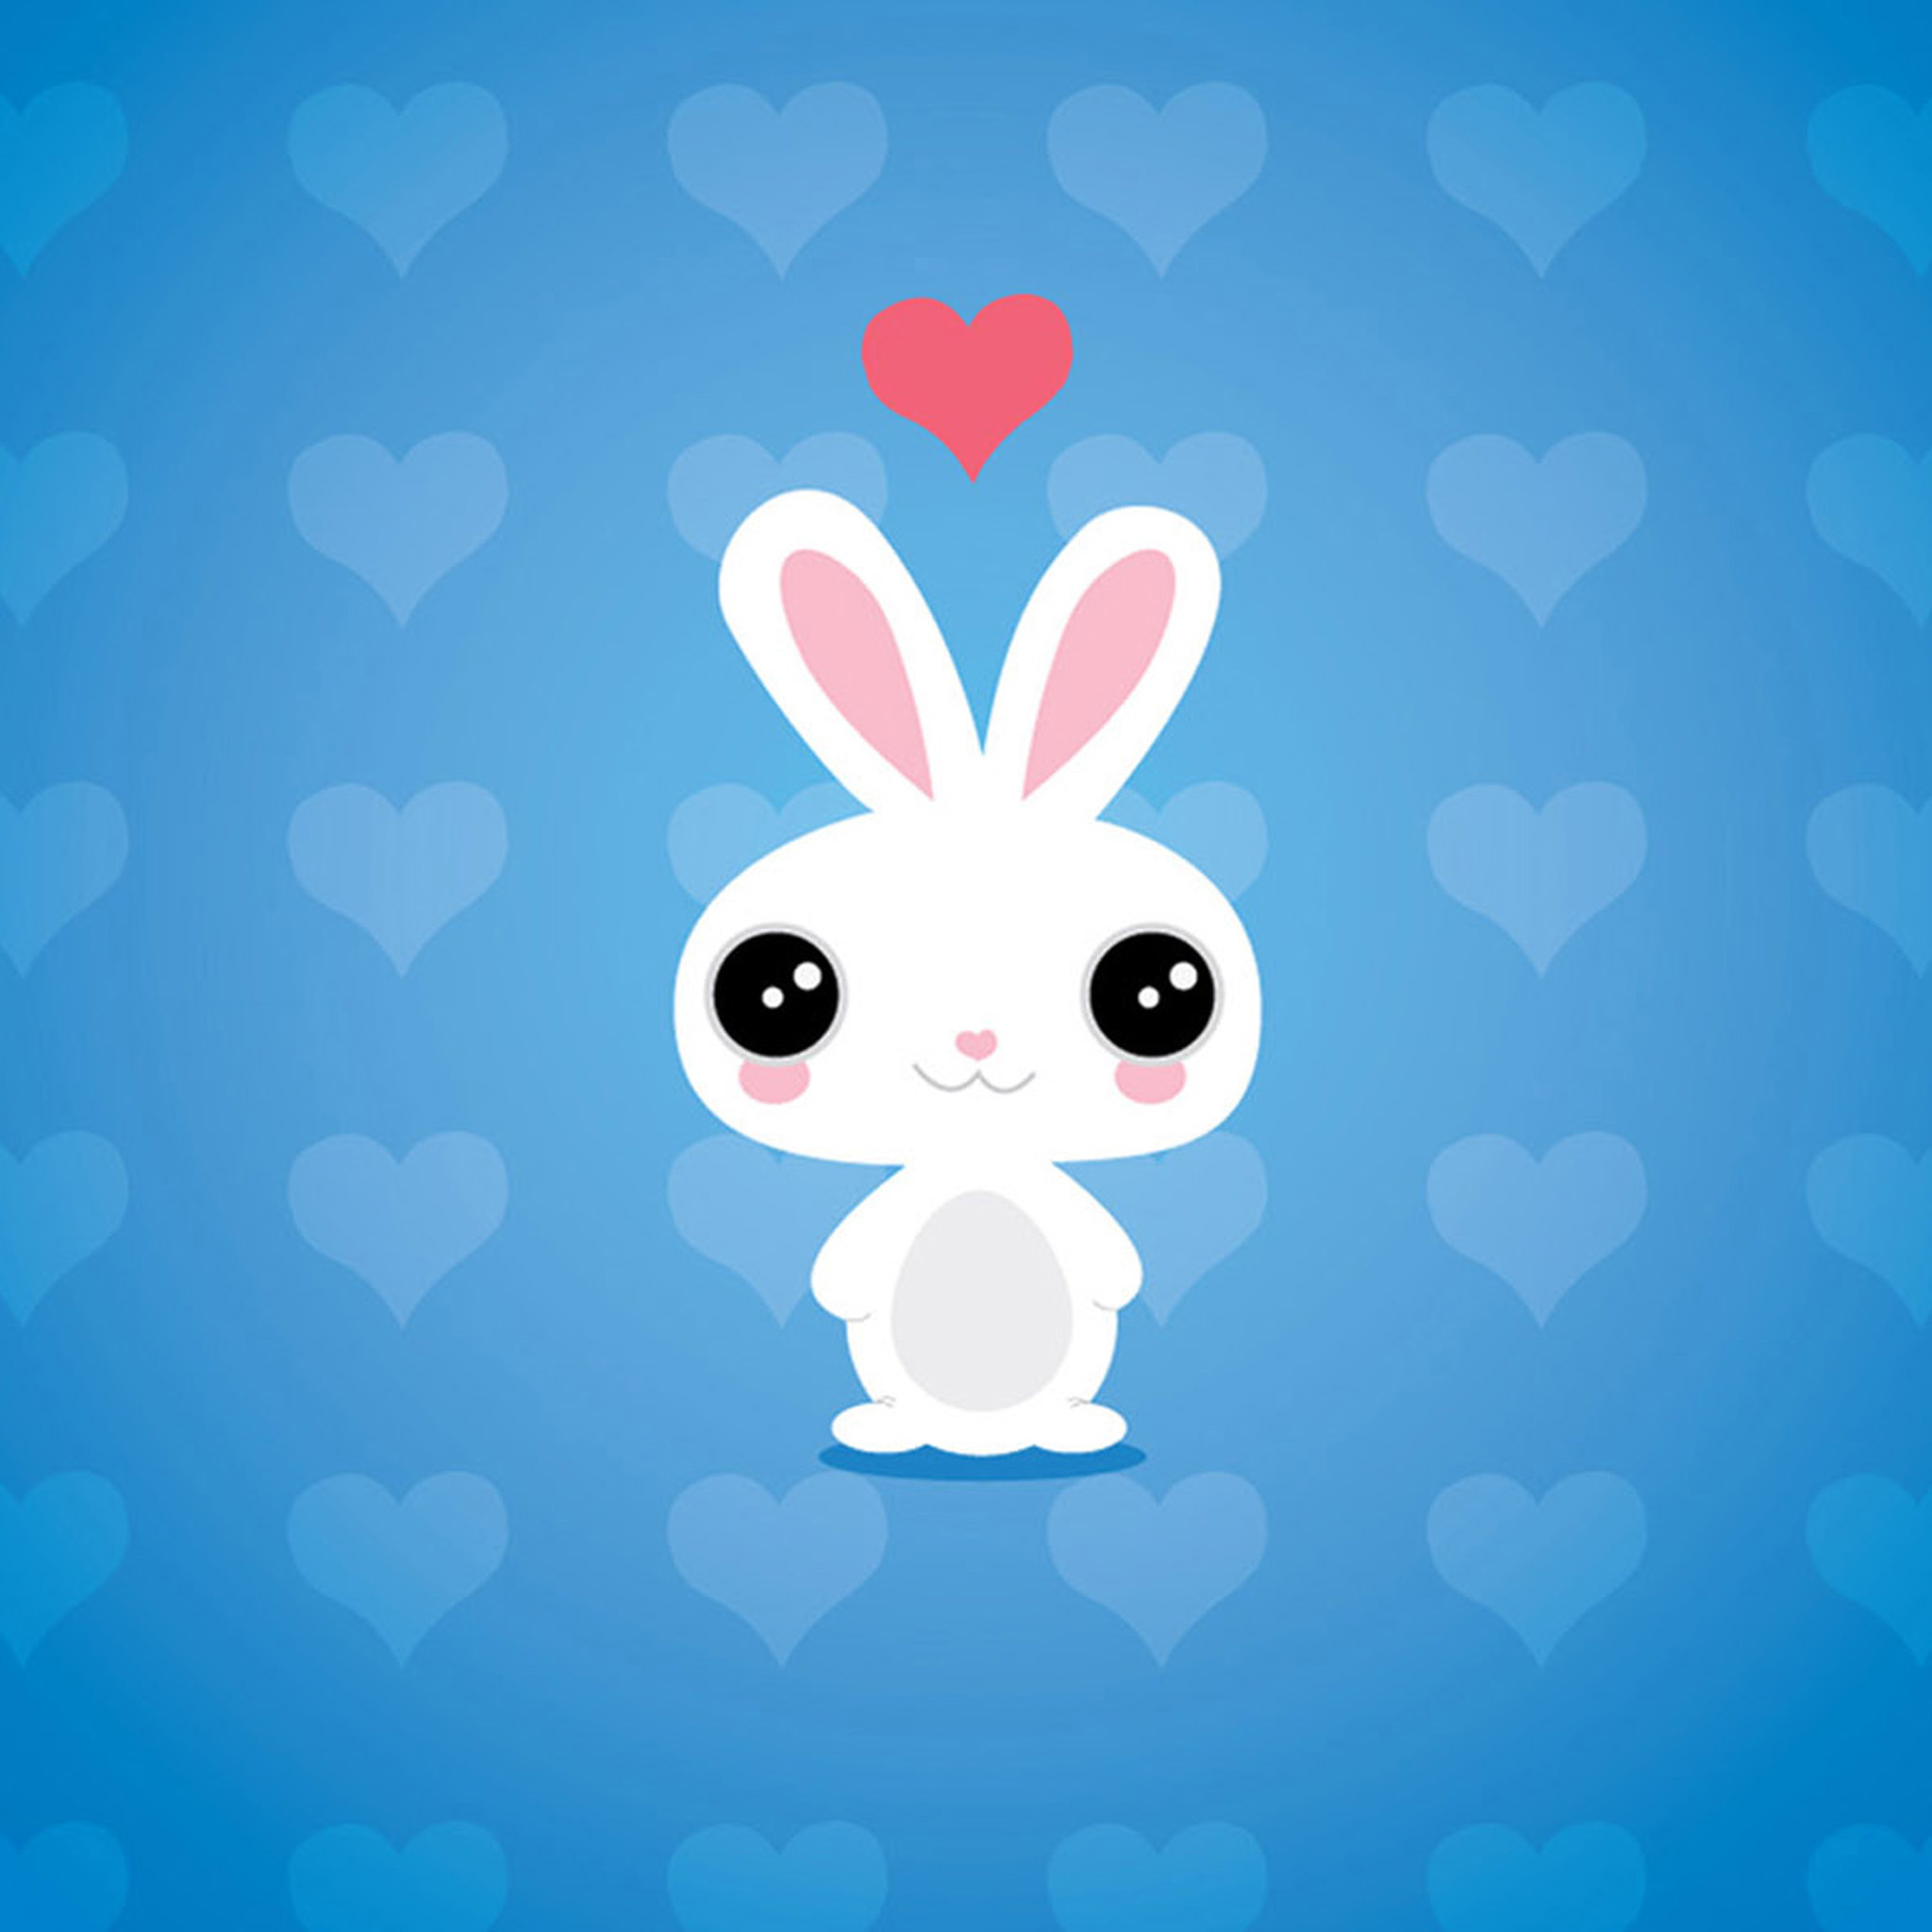 Free Download Cute Cartoon Wallpapers Awesome Cute Cartoon Pictures And 2048x2048 For Your Desktop Mobile Tablet Explore 77 Cute Cartoon Wallpapers Cute 3d Wallpaper 3d Cute Wallpapers For Desktop